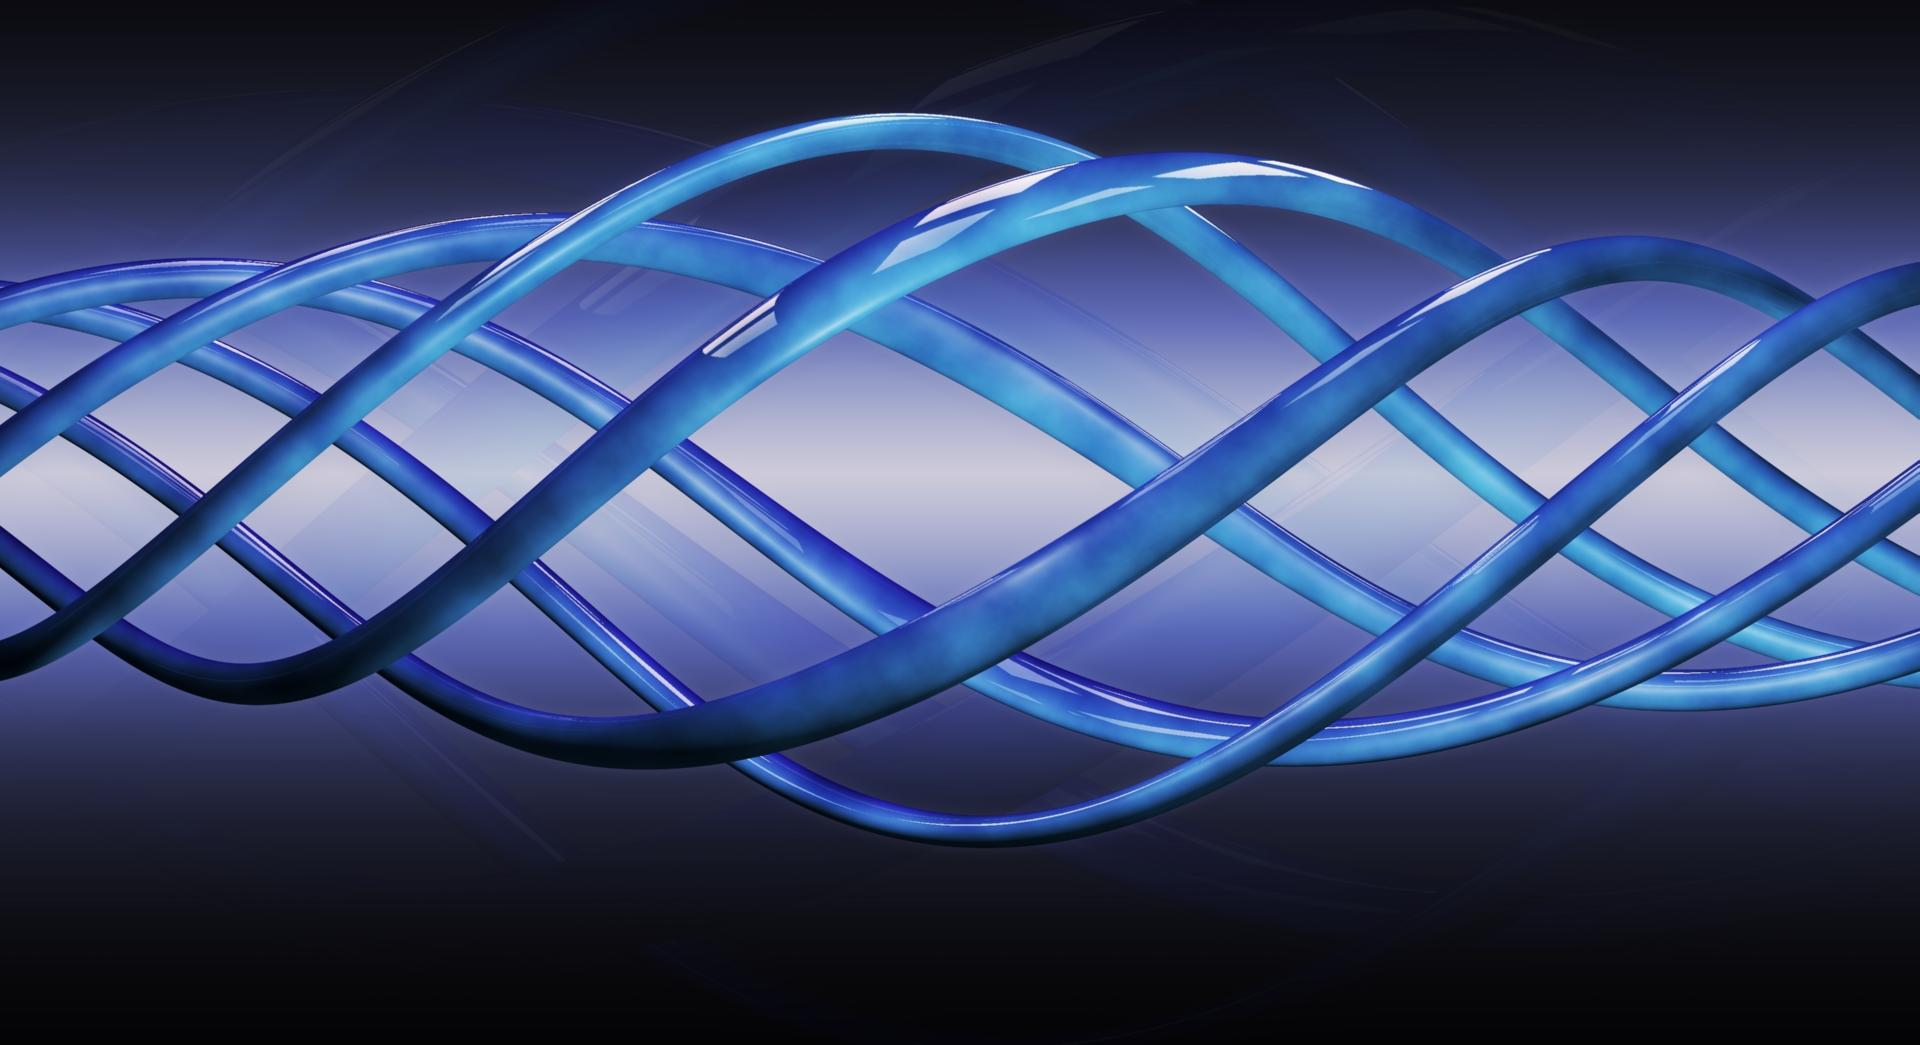 Blue spiral curves wallpapers HD quality